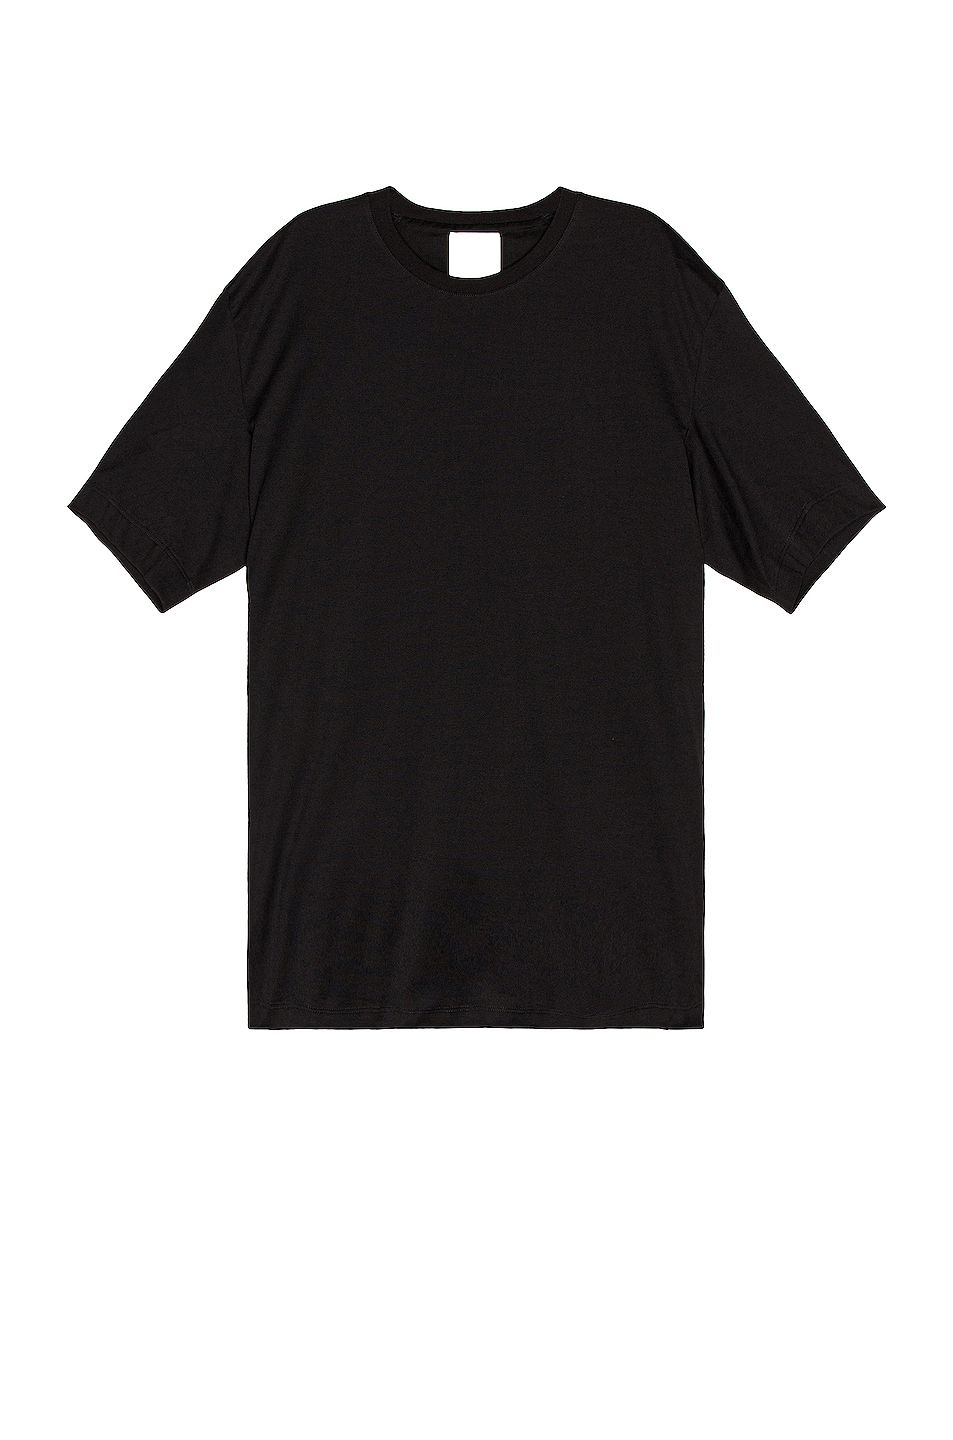 Image 1 of Y-3 Yohji Yamamoto Back Logo Short Sleeve Tee in Black